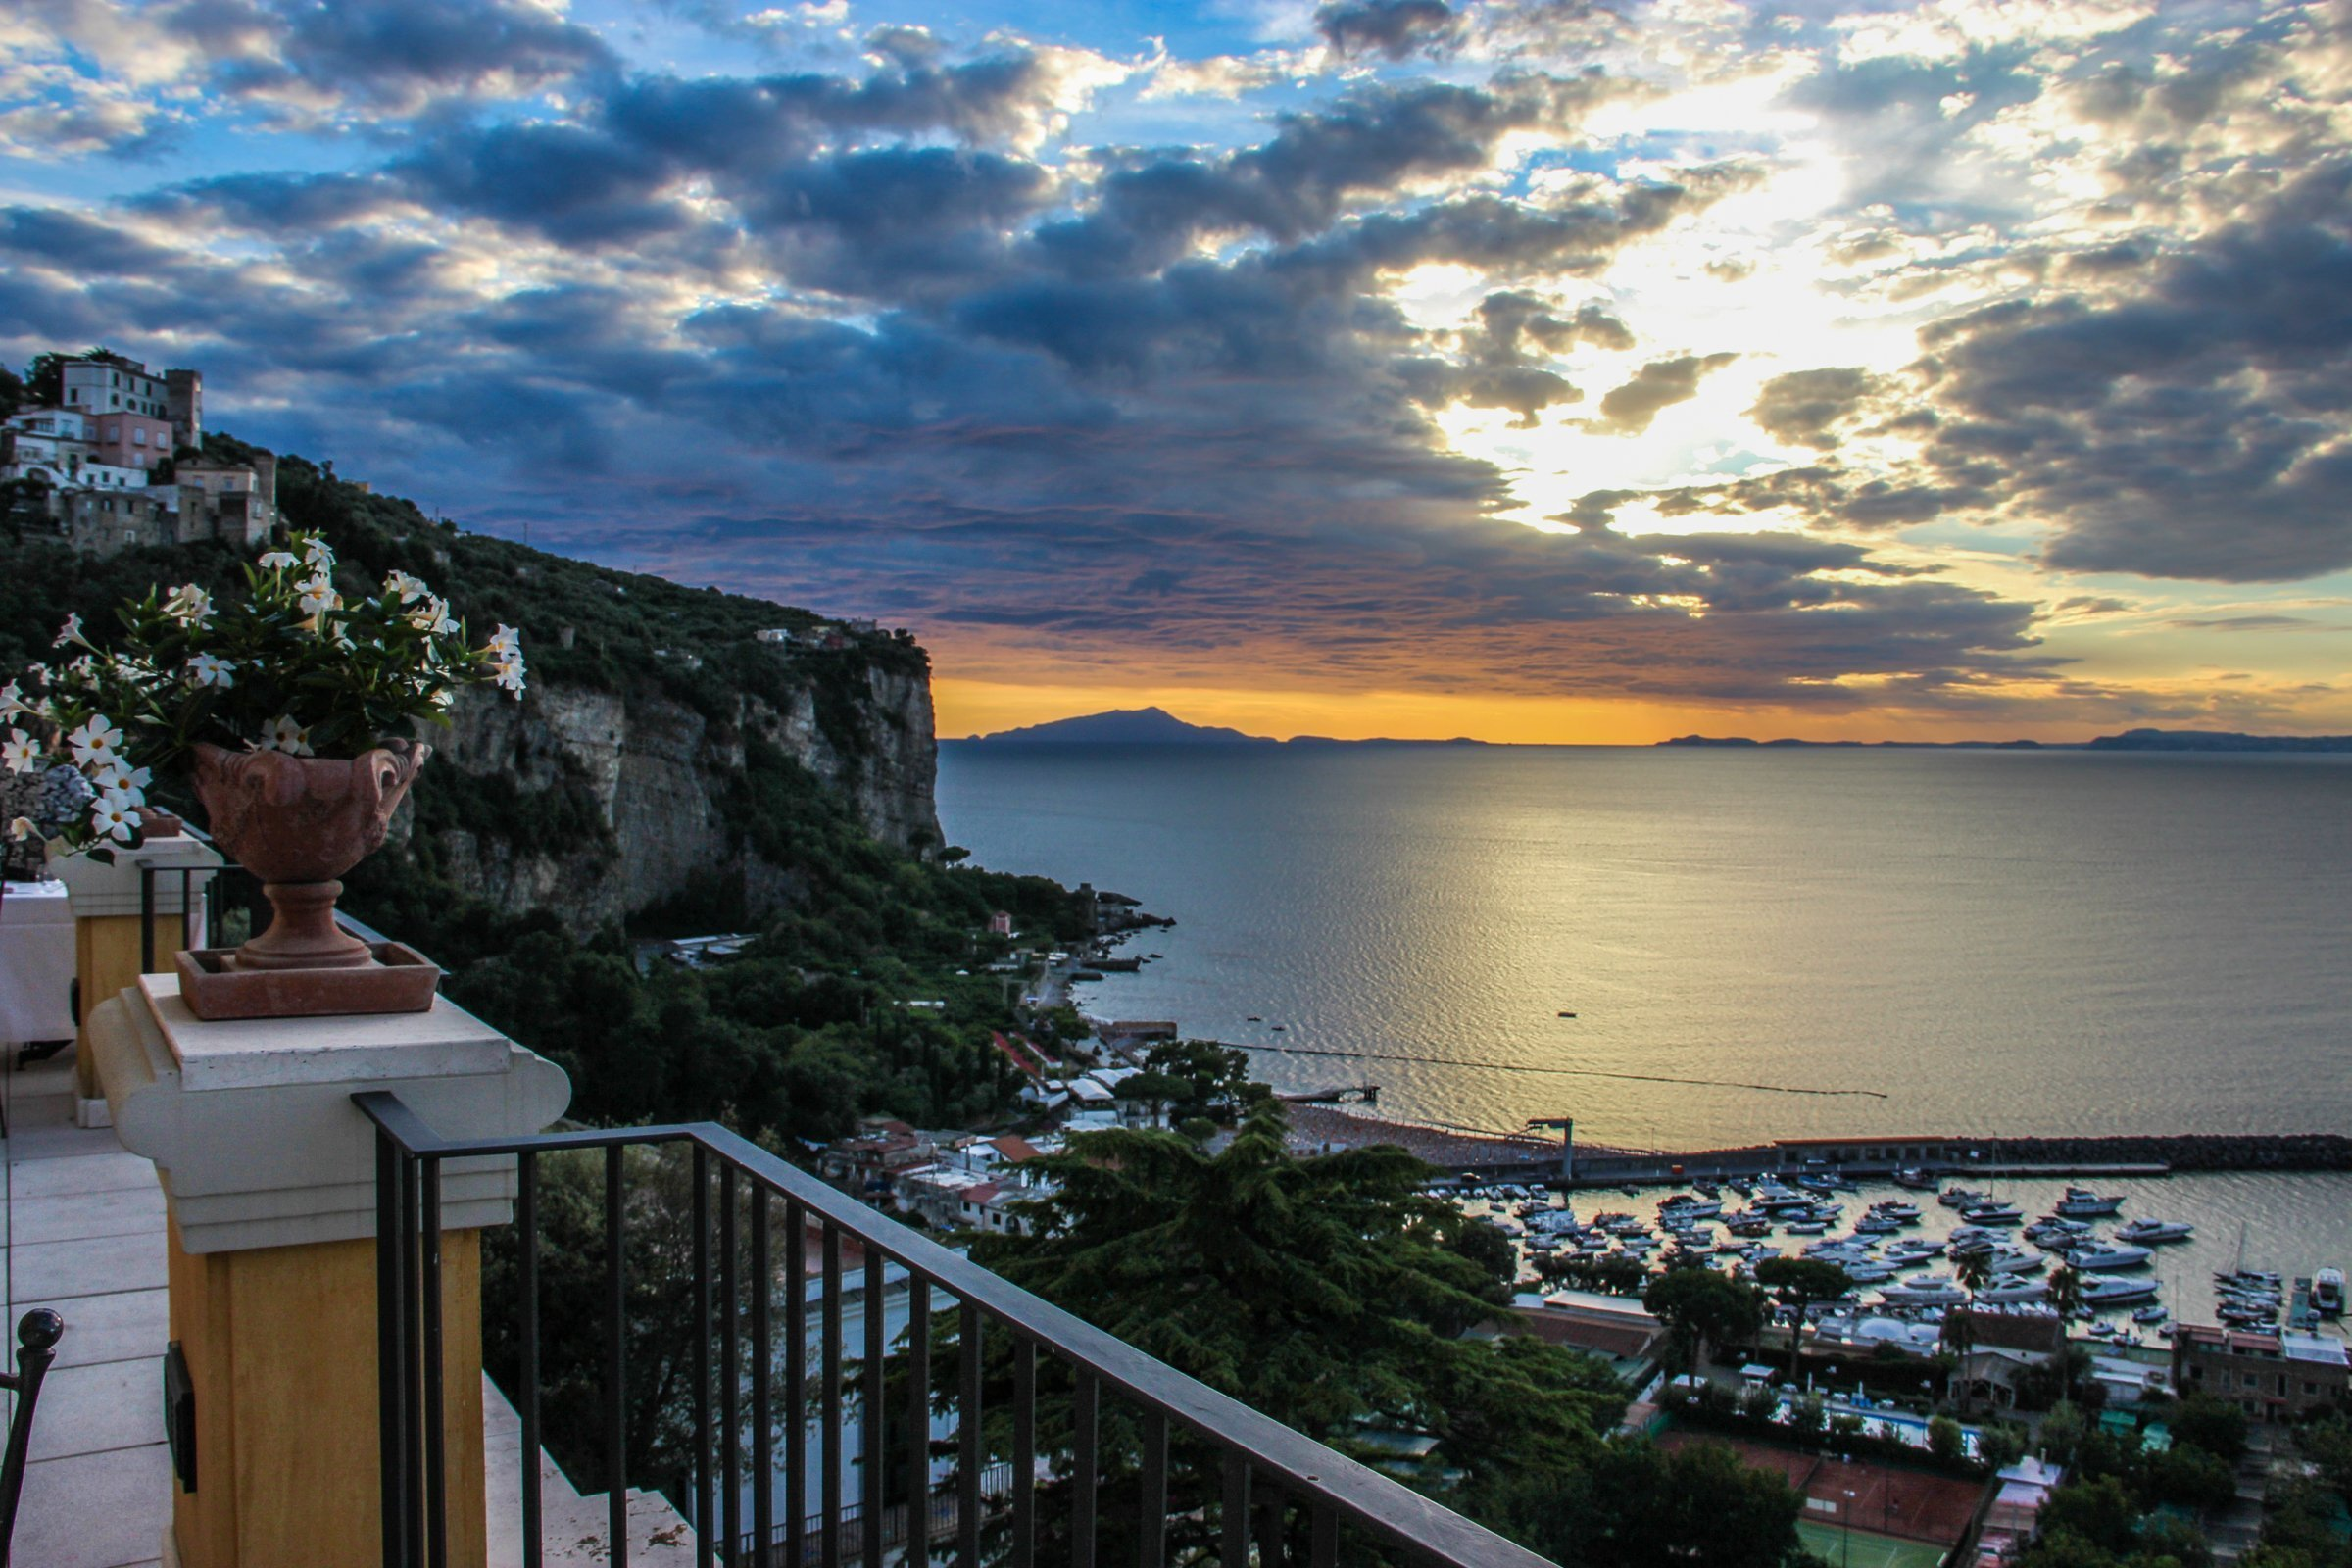 Cloudy Sky During Sunset Over Amalfi Coast